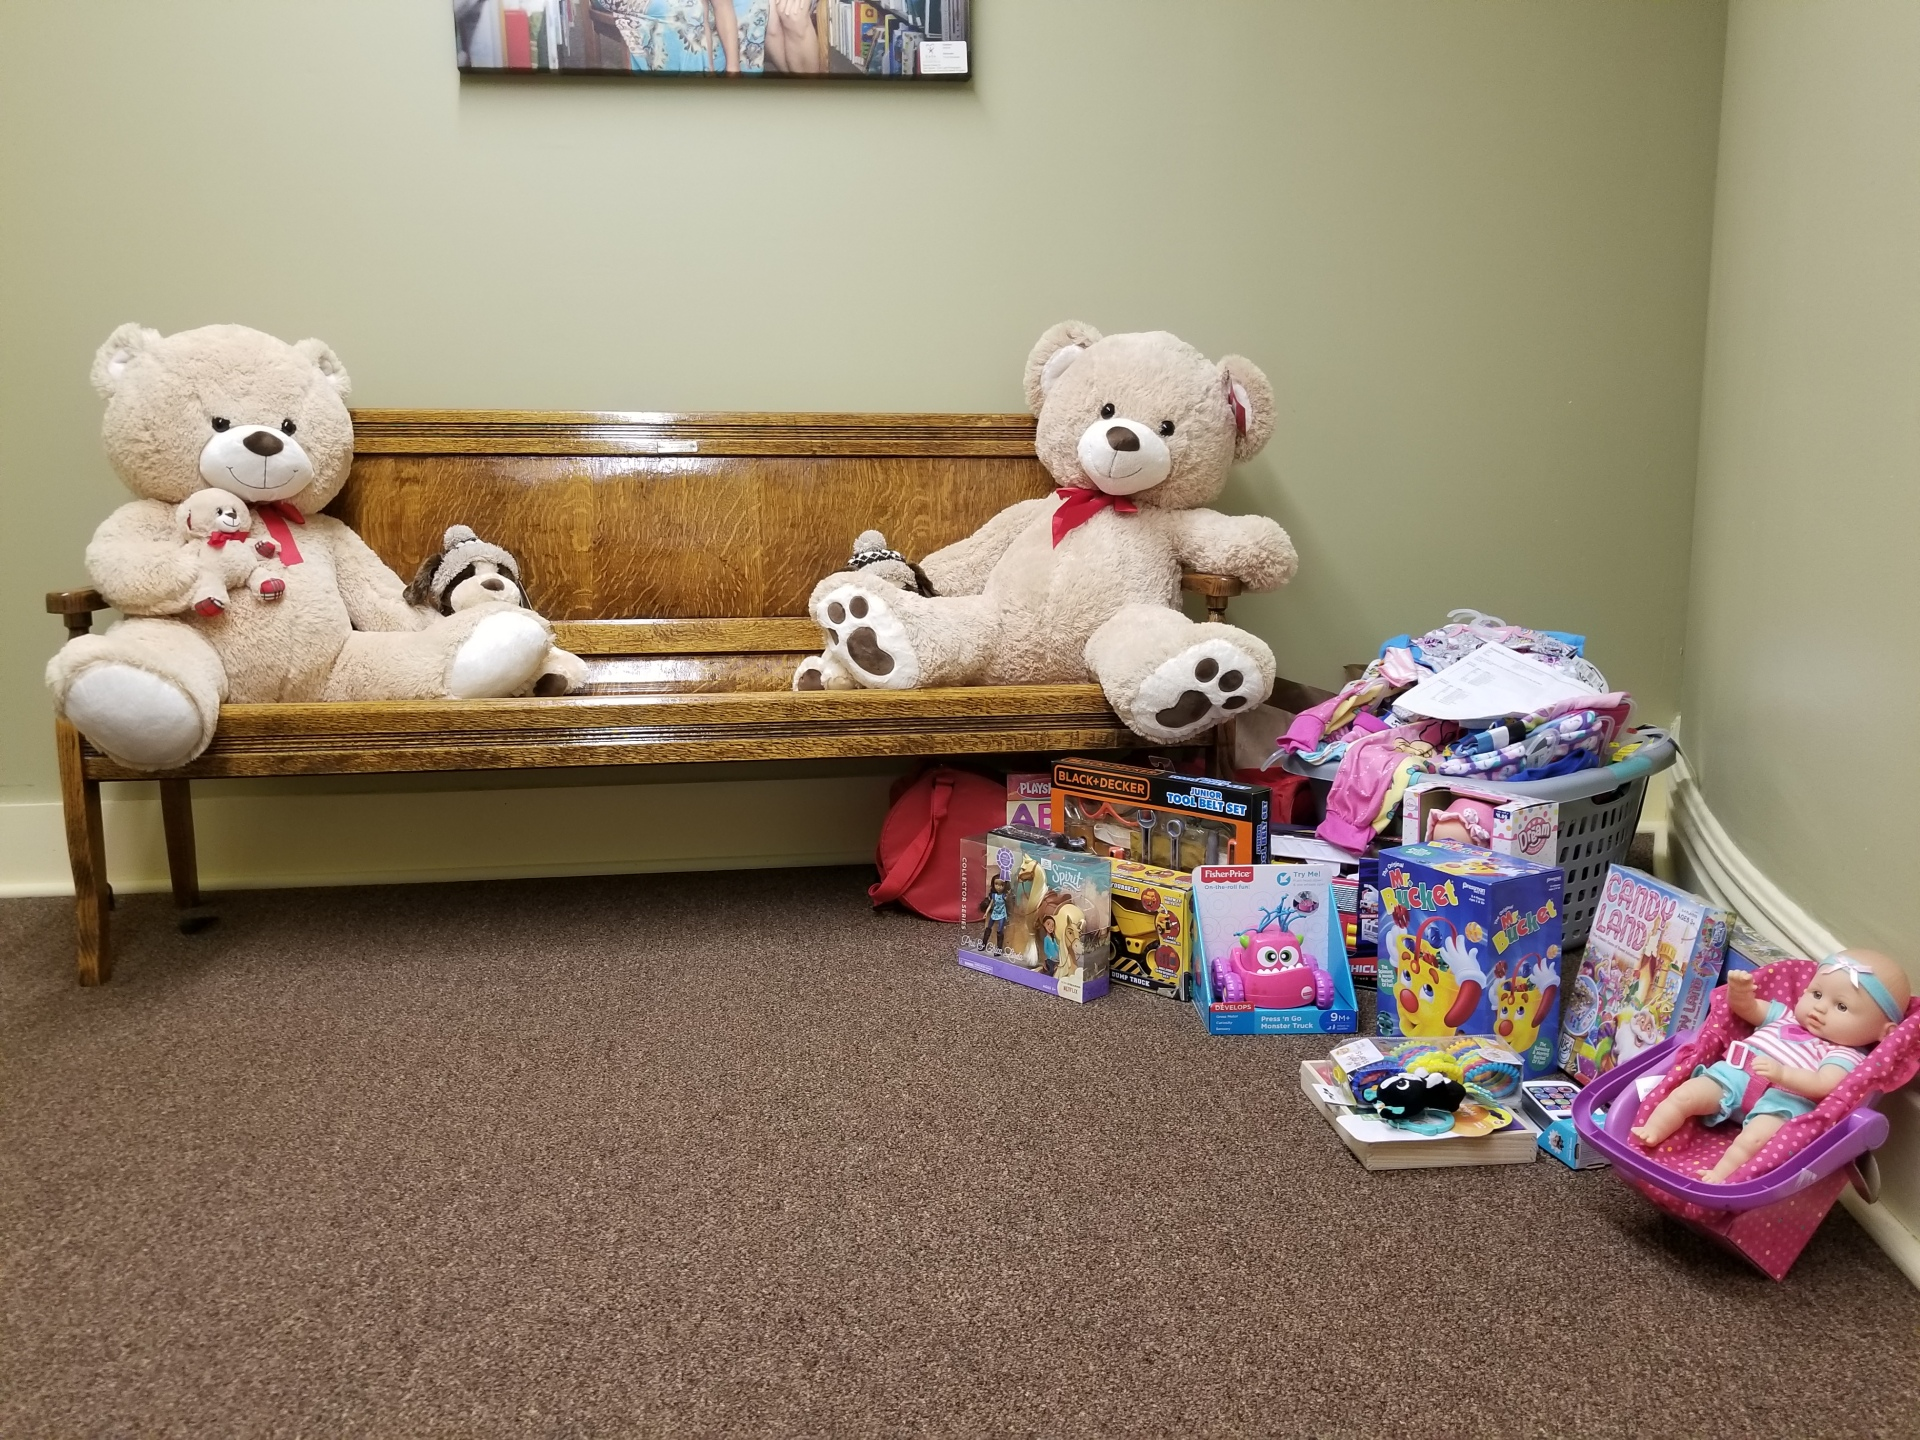 Two teddy bears sit opposite one another on a bench, to the right of the bench on the floor there is a pile of miscellaneous toys, and above the two bears a portrait can be barely be seen in the frame.